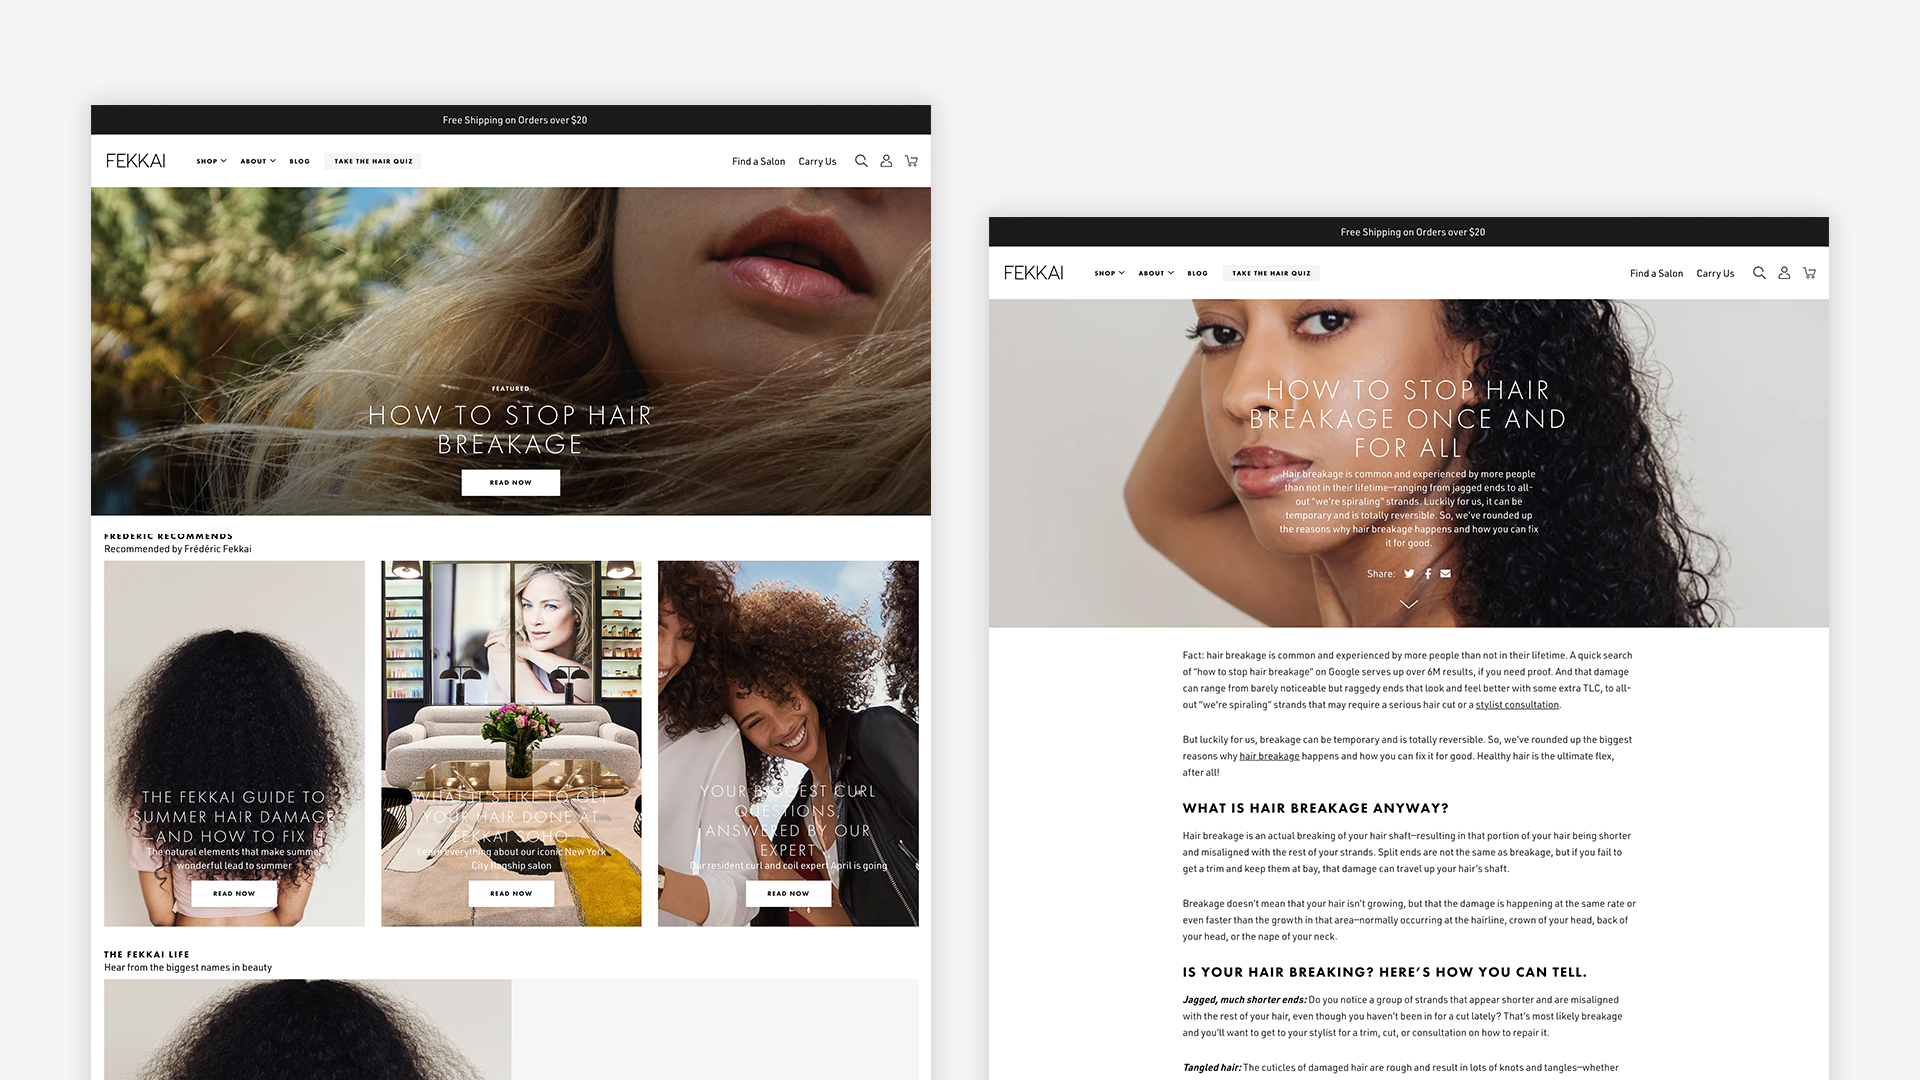 Blog Landing page and Flexible Article template on desktop side by side